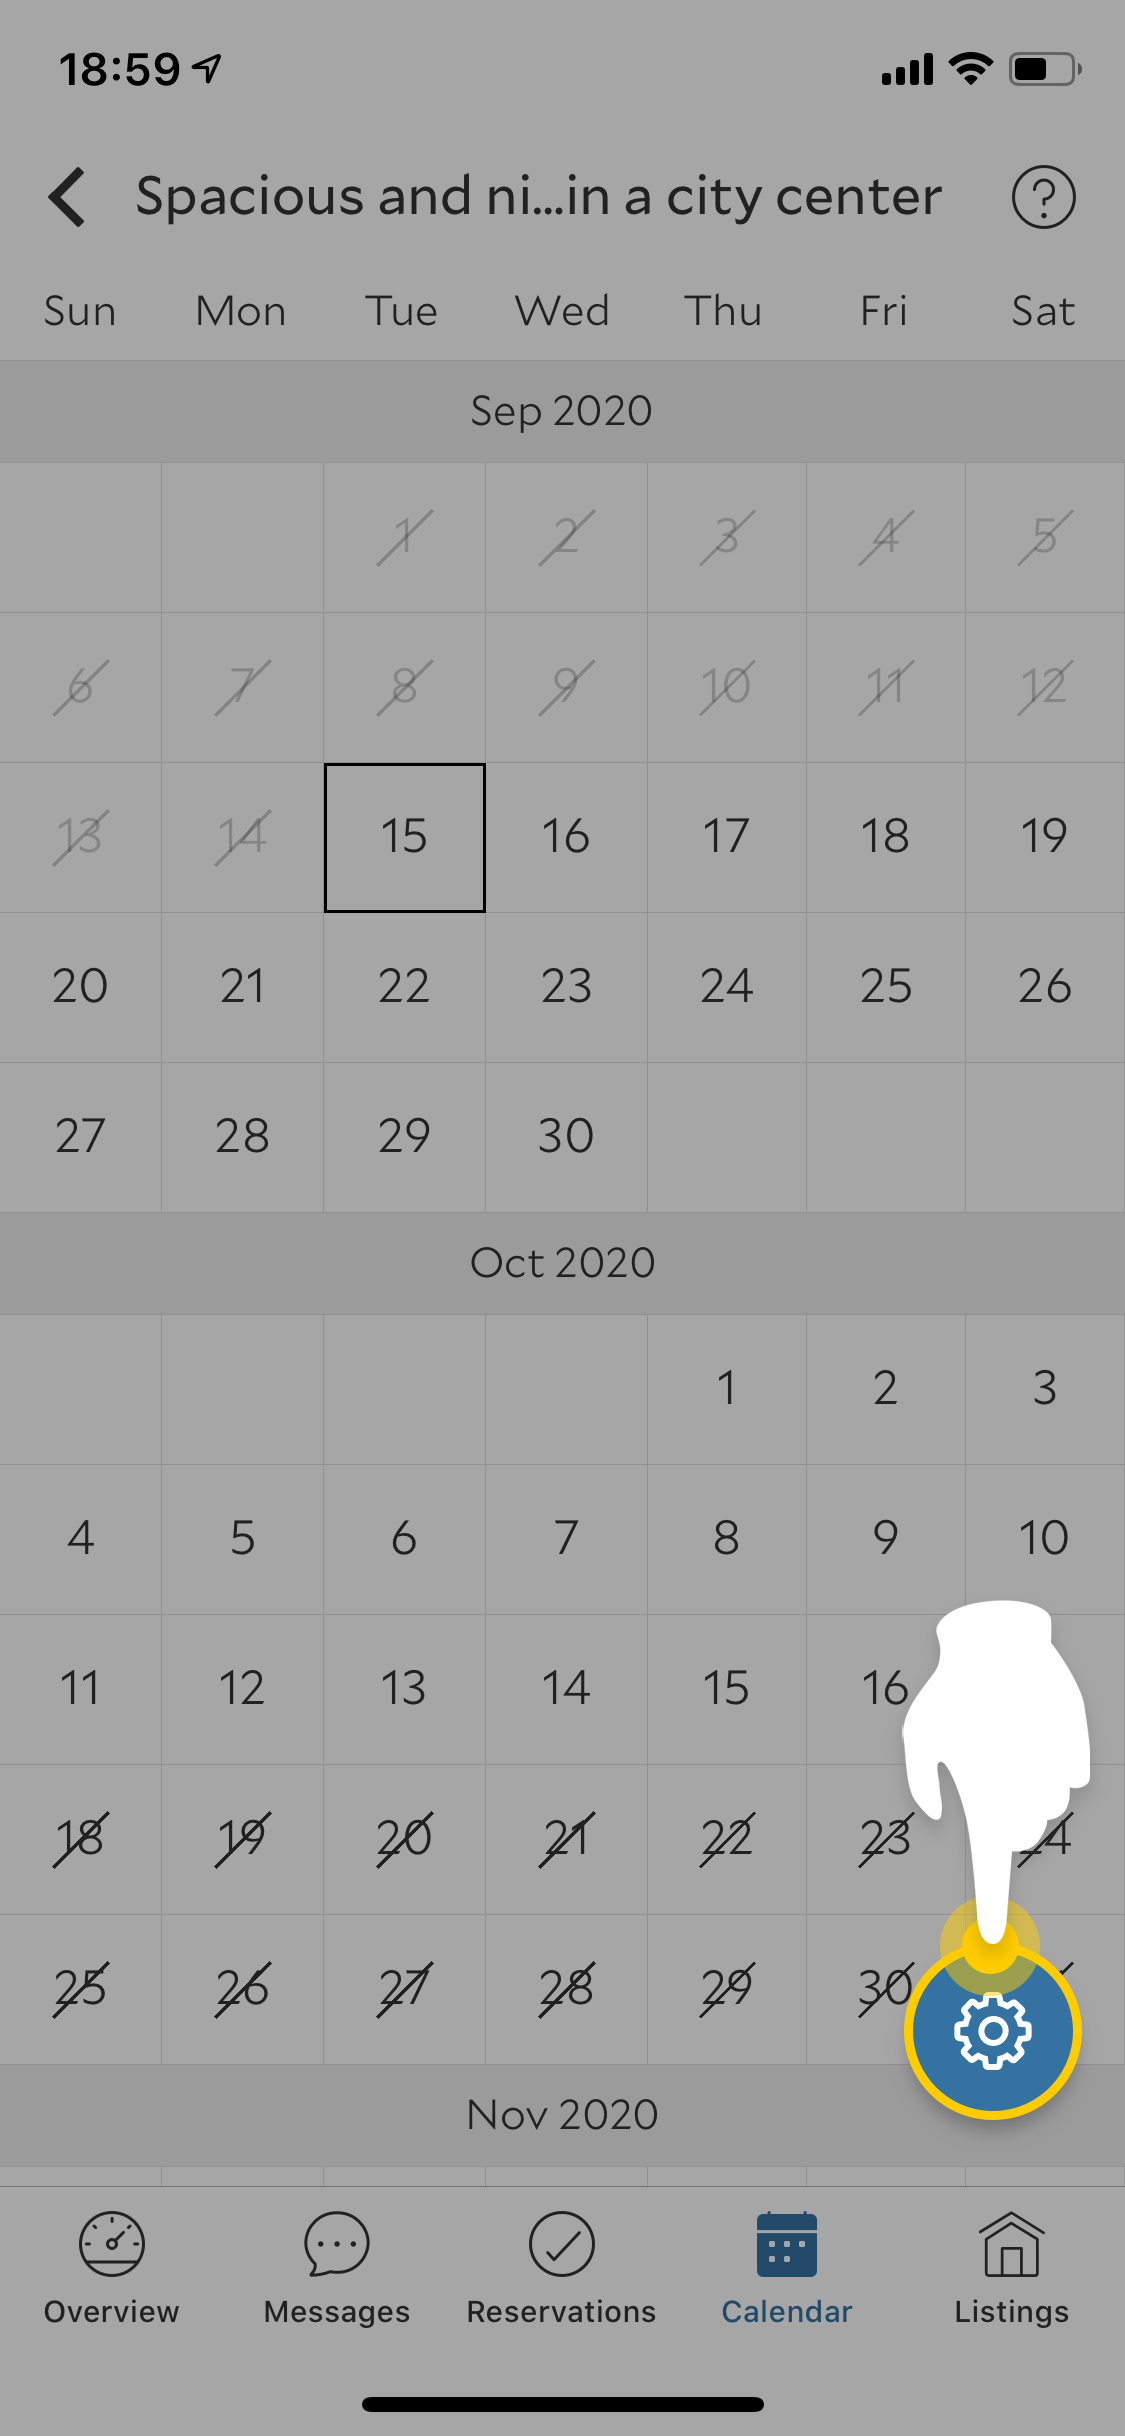 20.Set_which_days_can_be_booked_and_sync_your_calendar_with_other_platforms_4.jpg